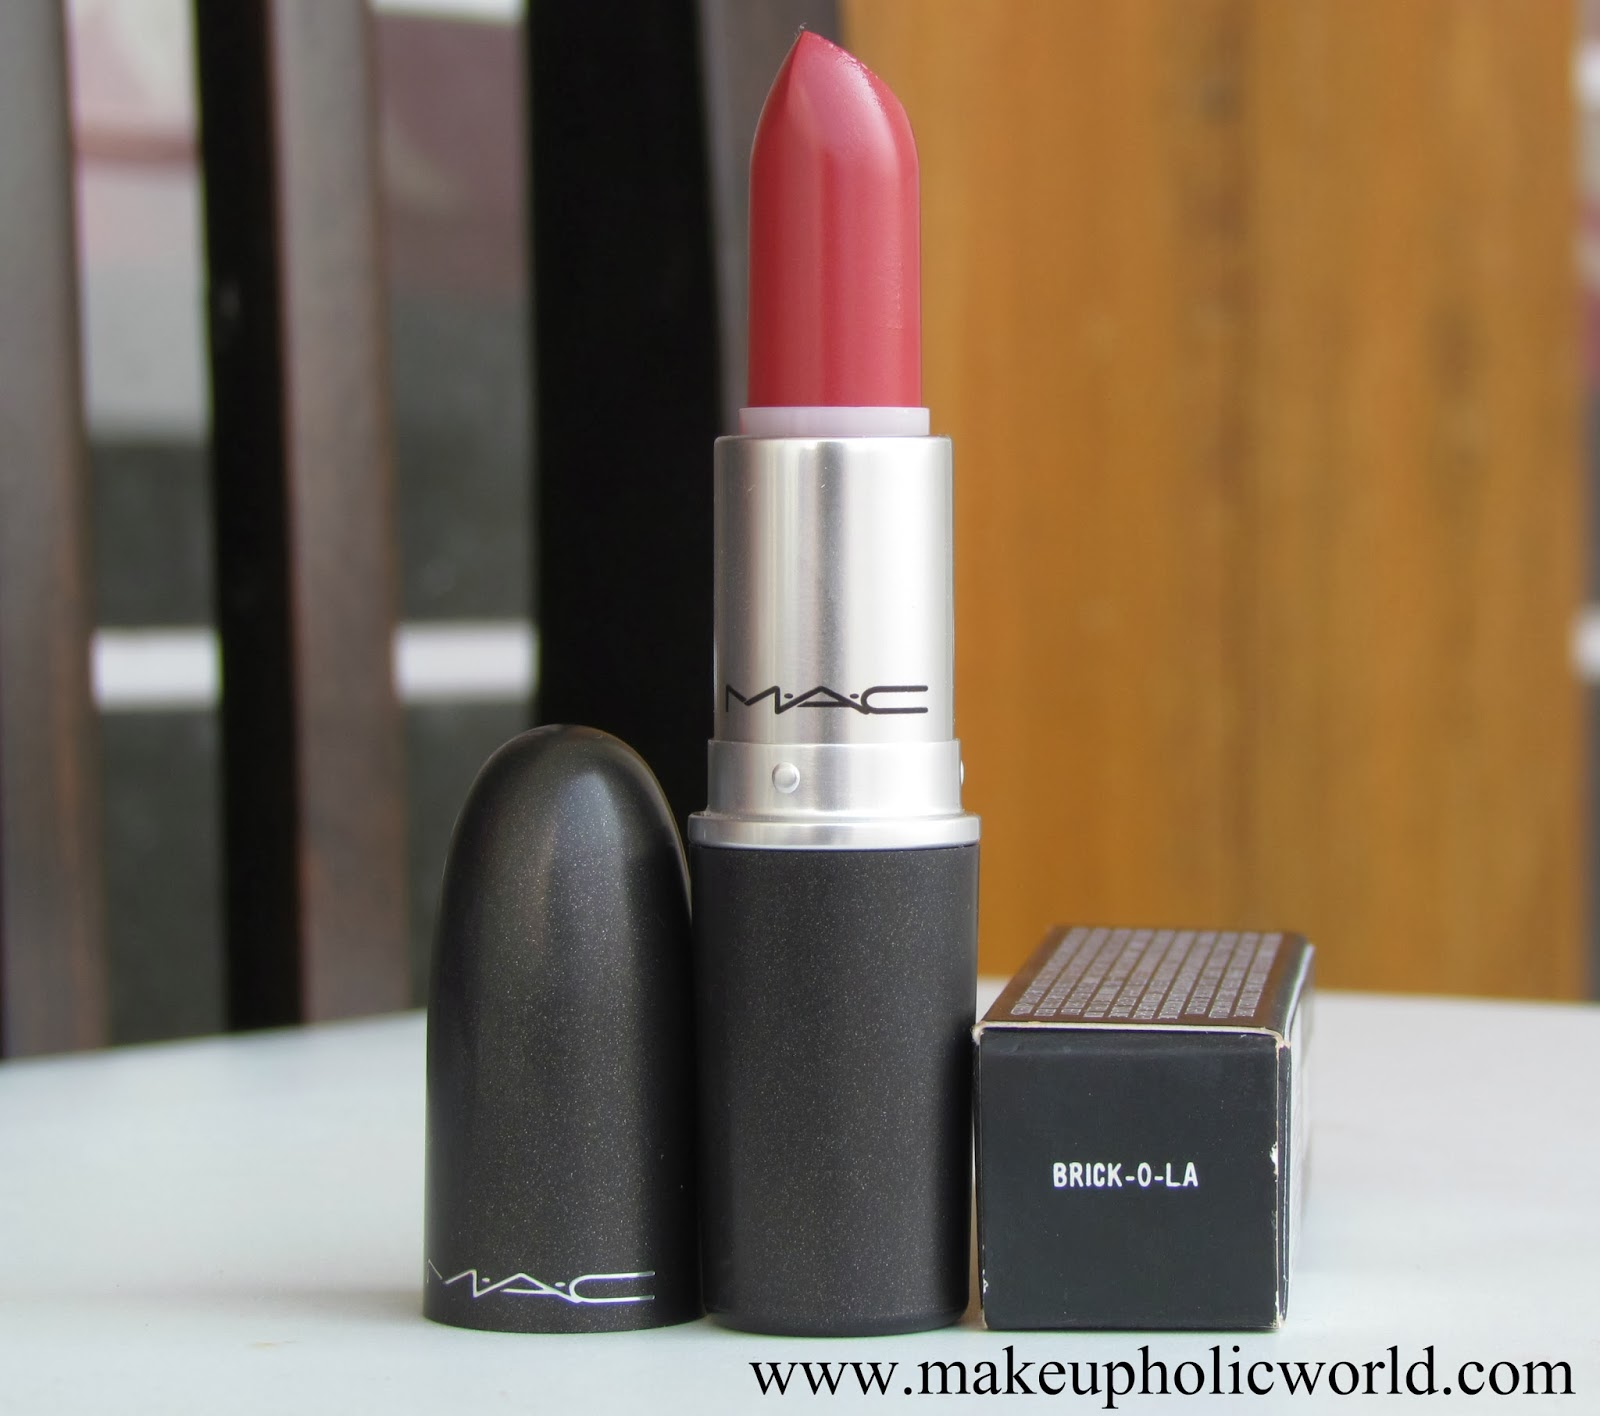 mac brickola lipstick review photos swatches